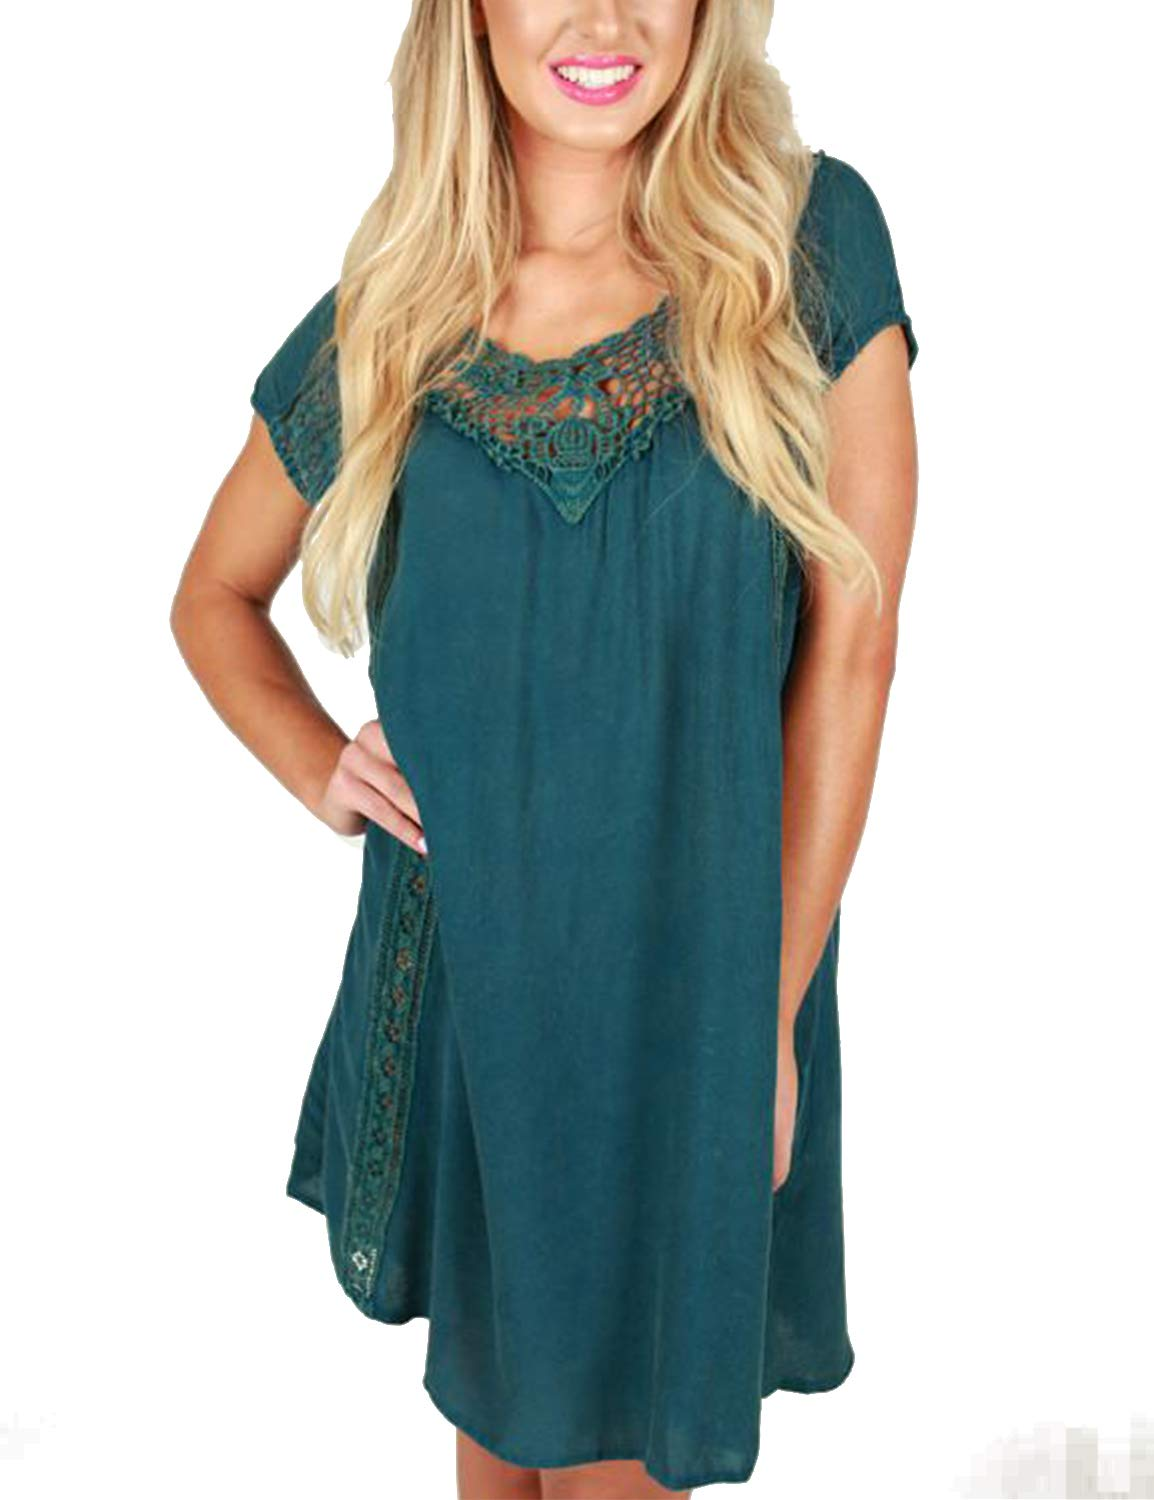 Blooming Jelly Women's Round Neck Lace Crochet Short Sleeve Flowy Mini Dress Turquoise